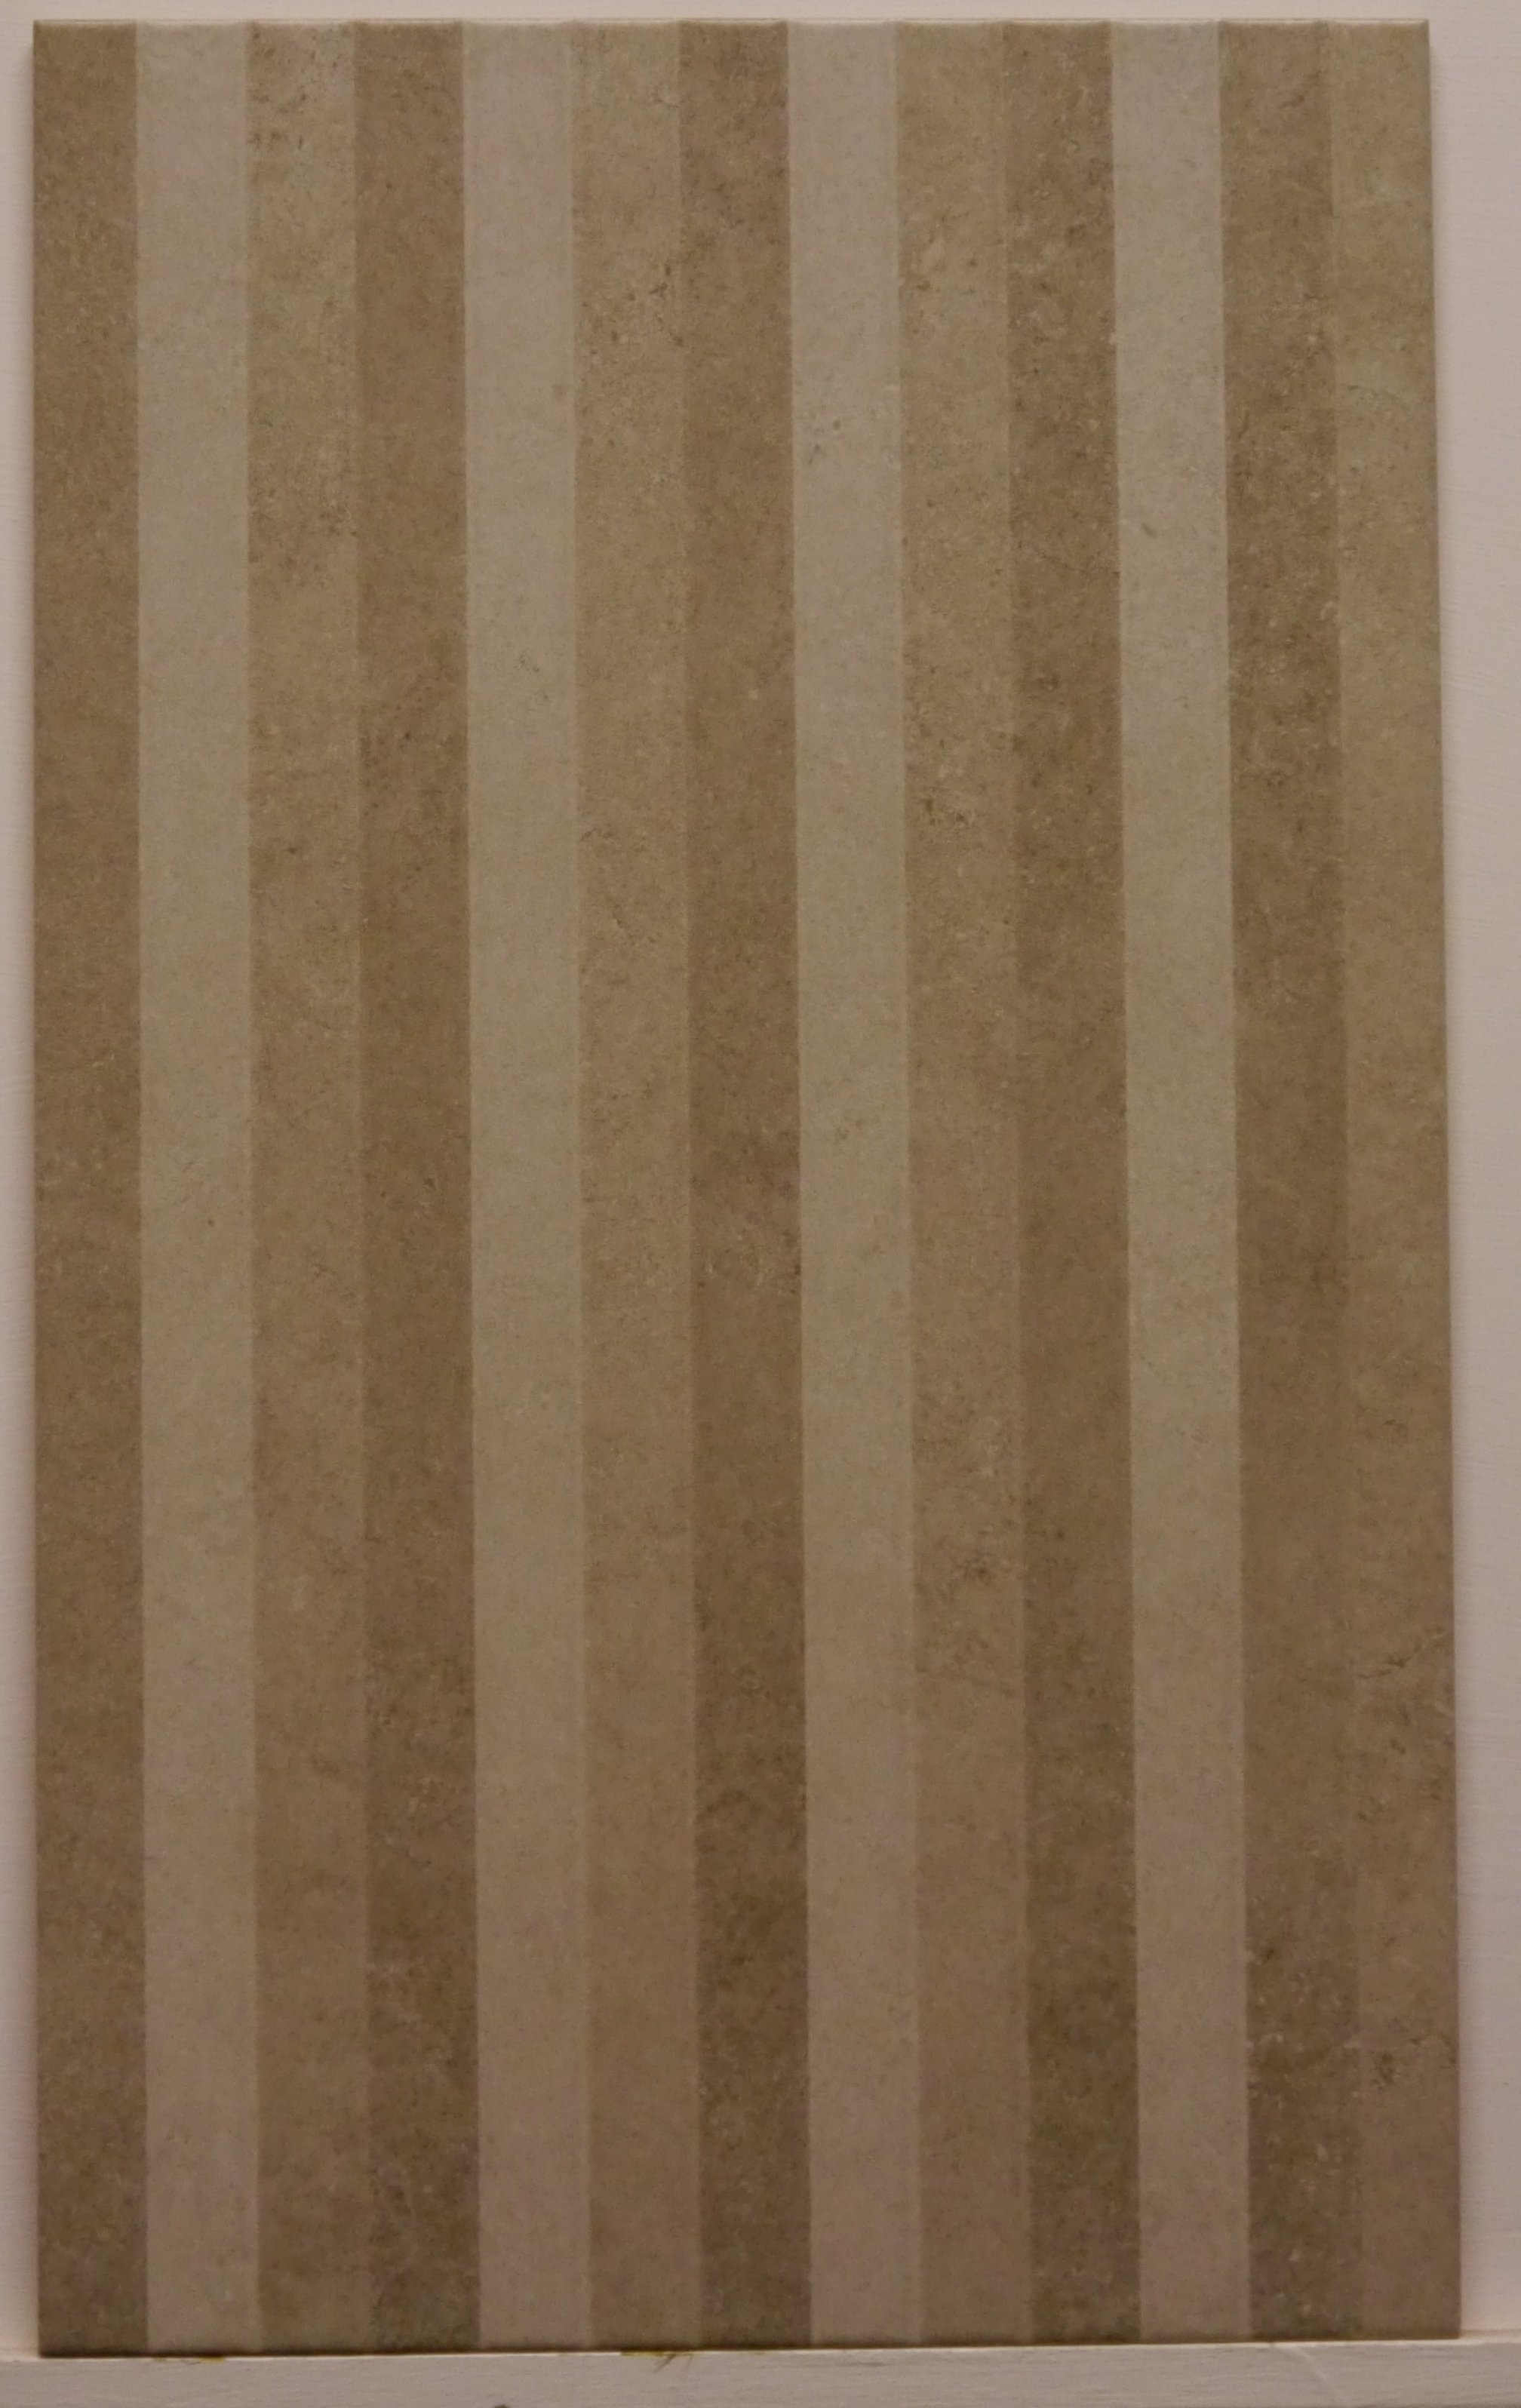 M9050 ceramic decor wall tile 333 x 550 taupe the tile warehouse maldon essex - Wall taupe ...